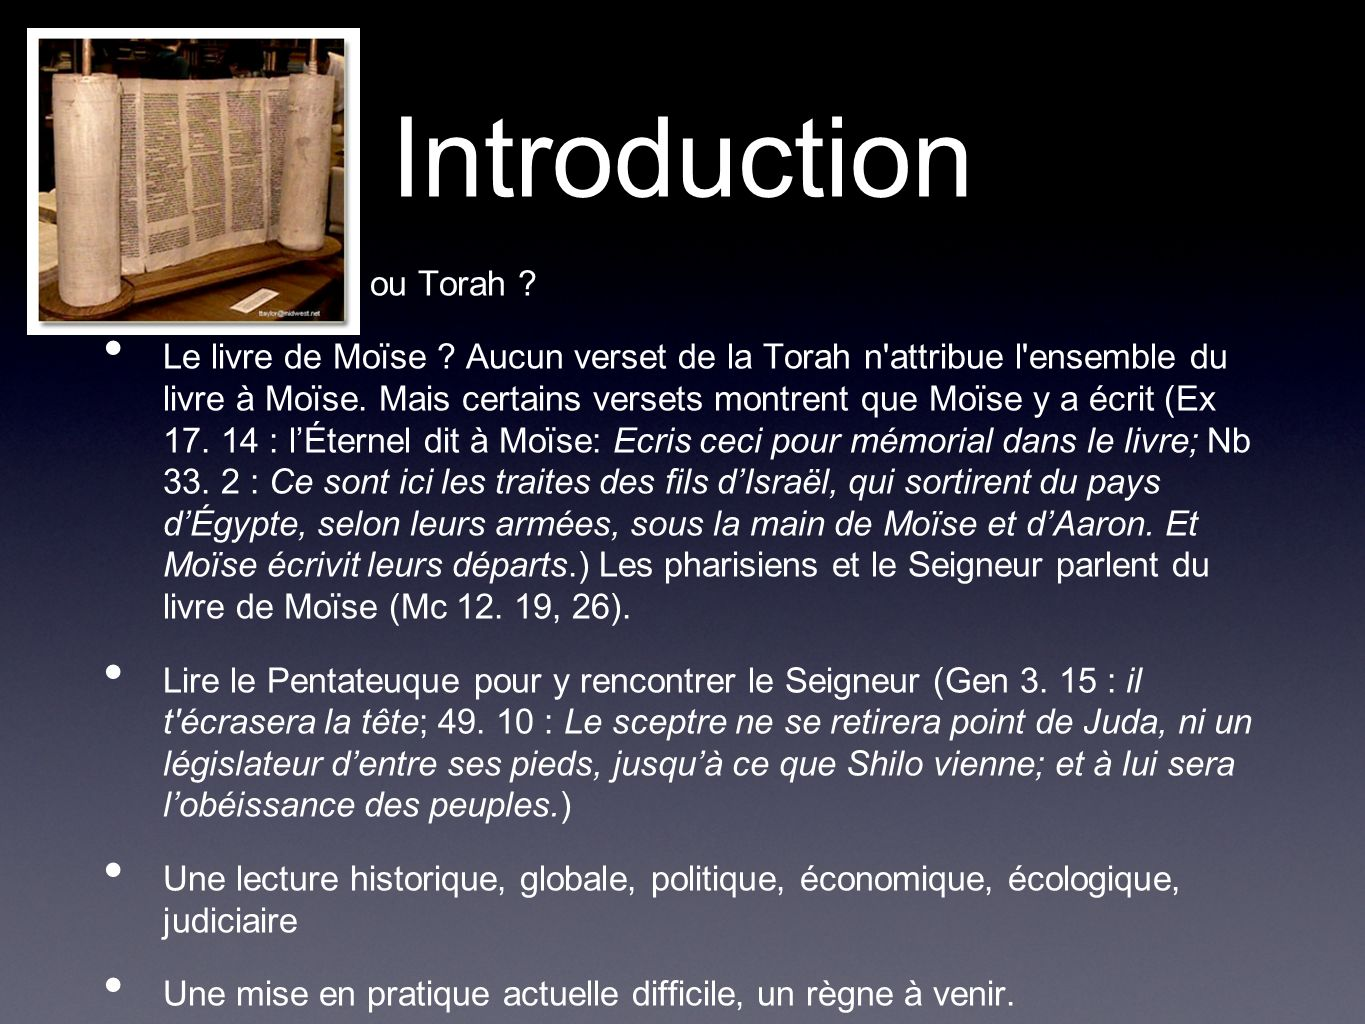 Introduction Pentateuque ou Torah